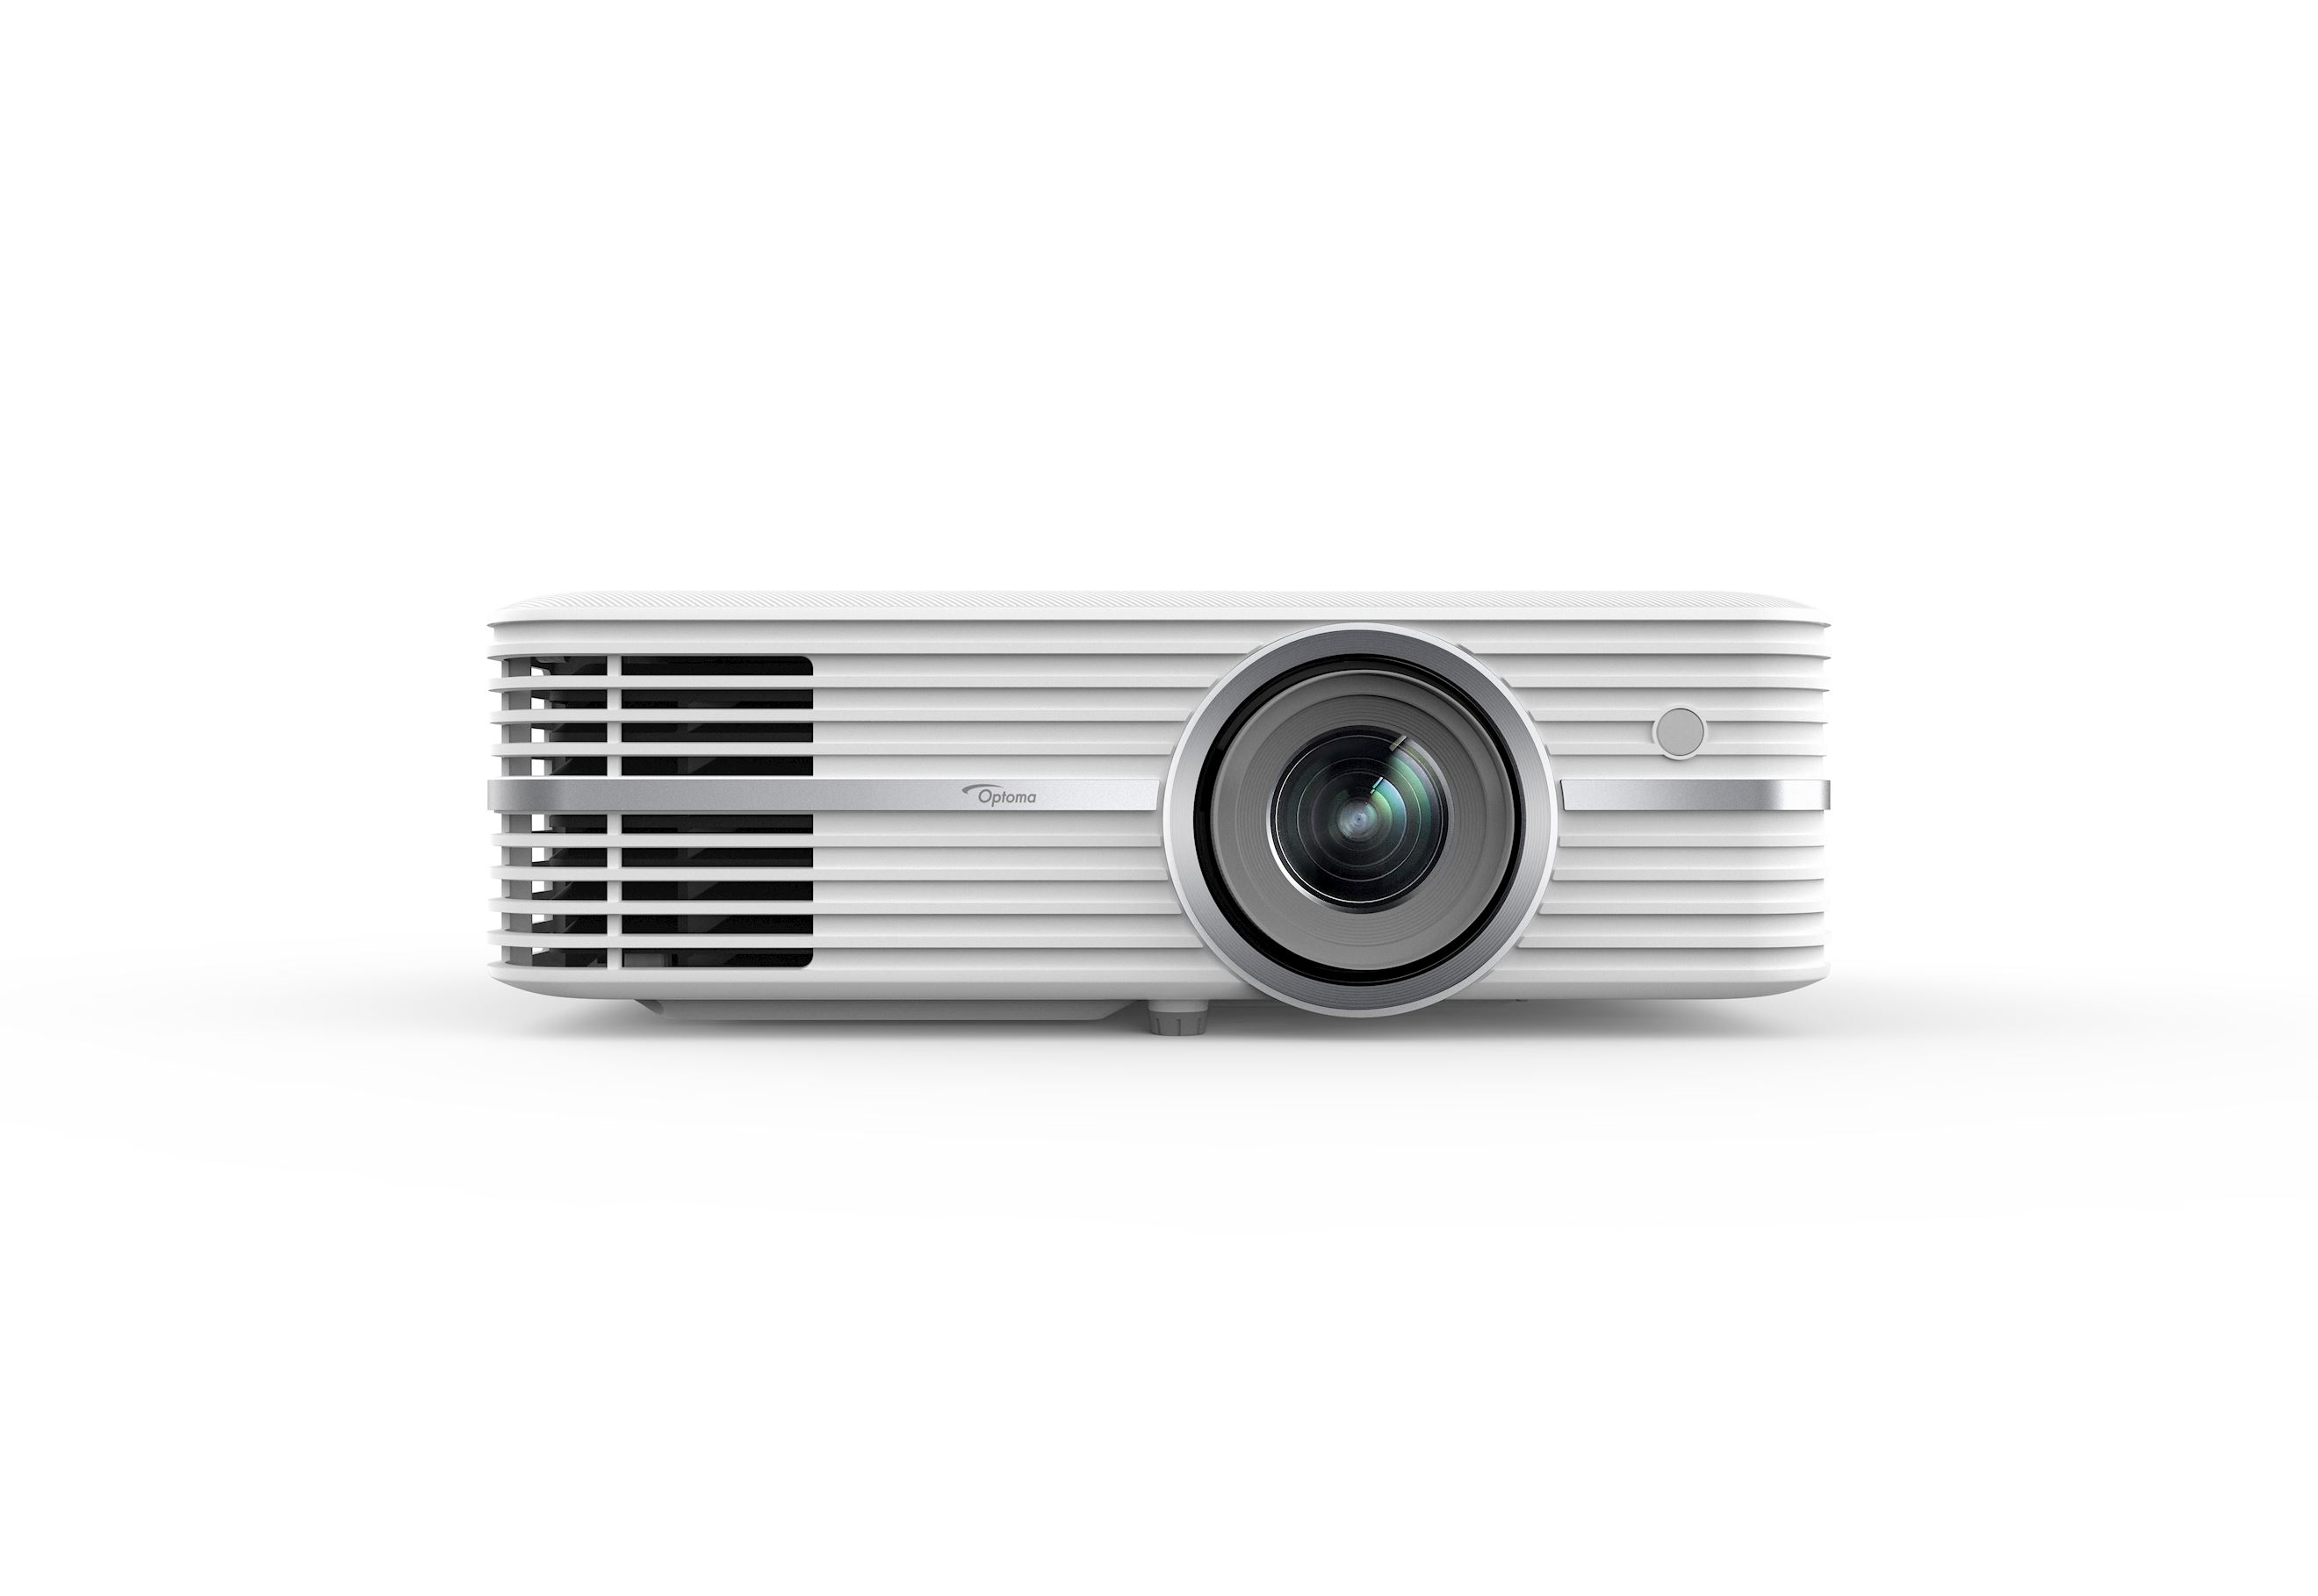 Optoma UHD50 2400lm 4K DLP Home Theater Projector